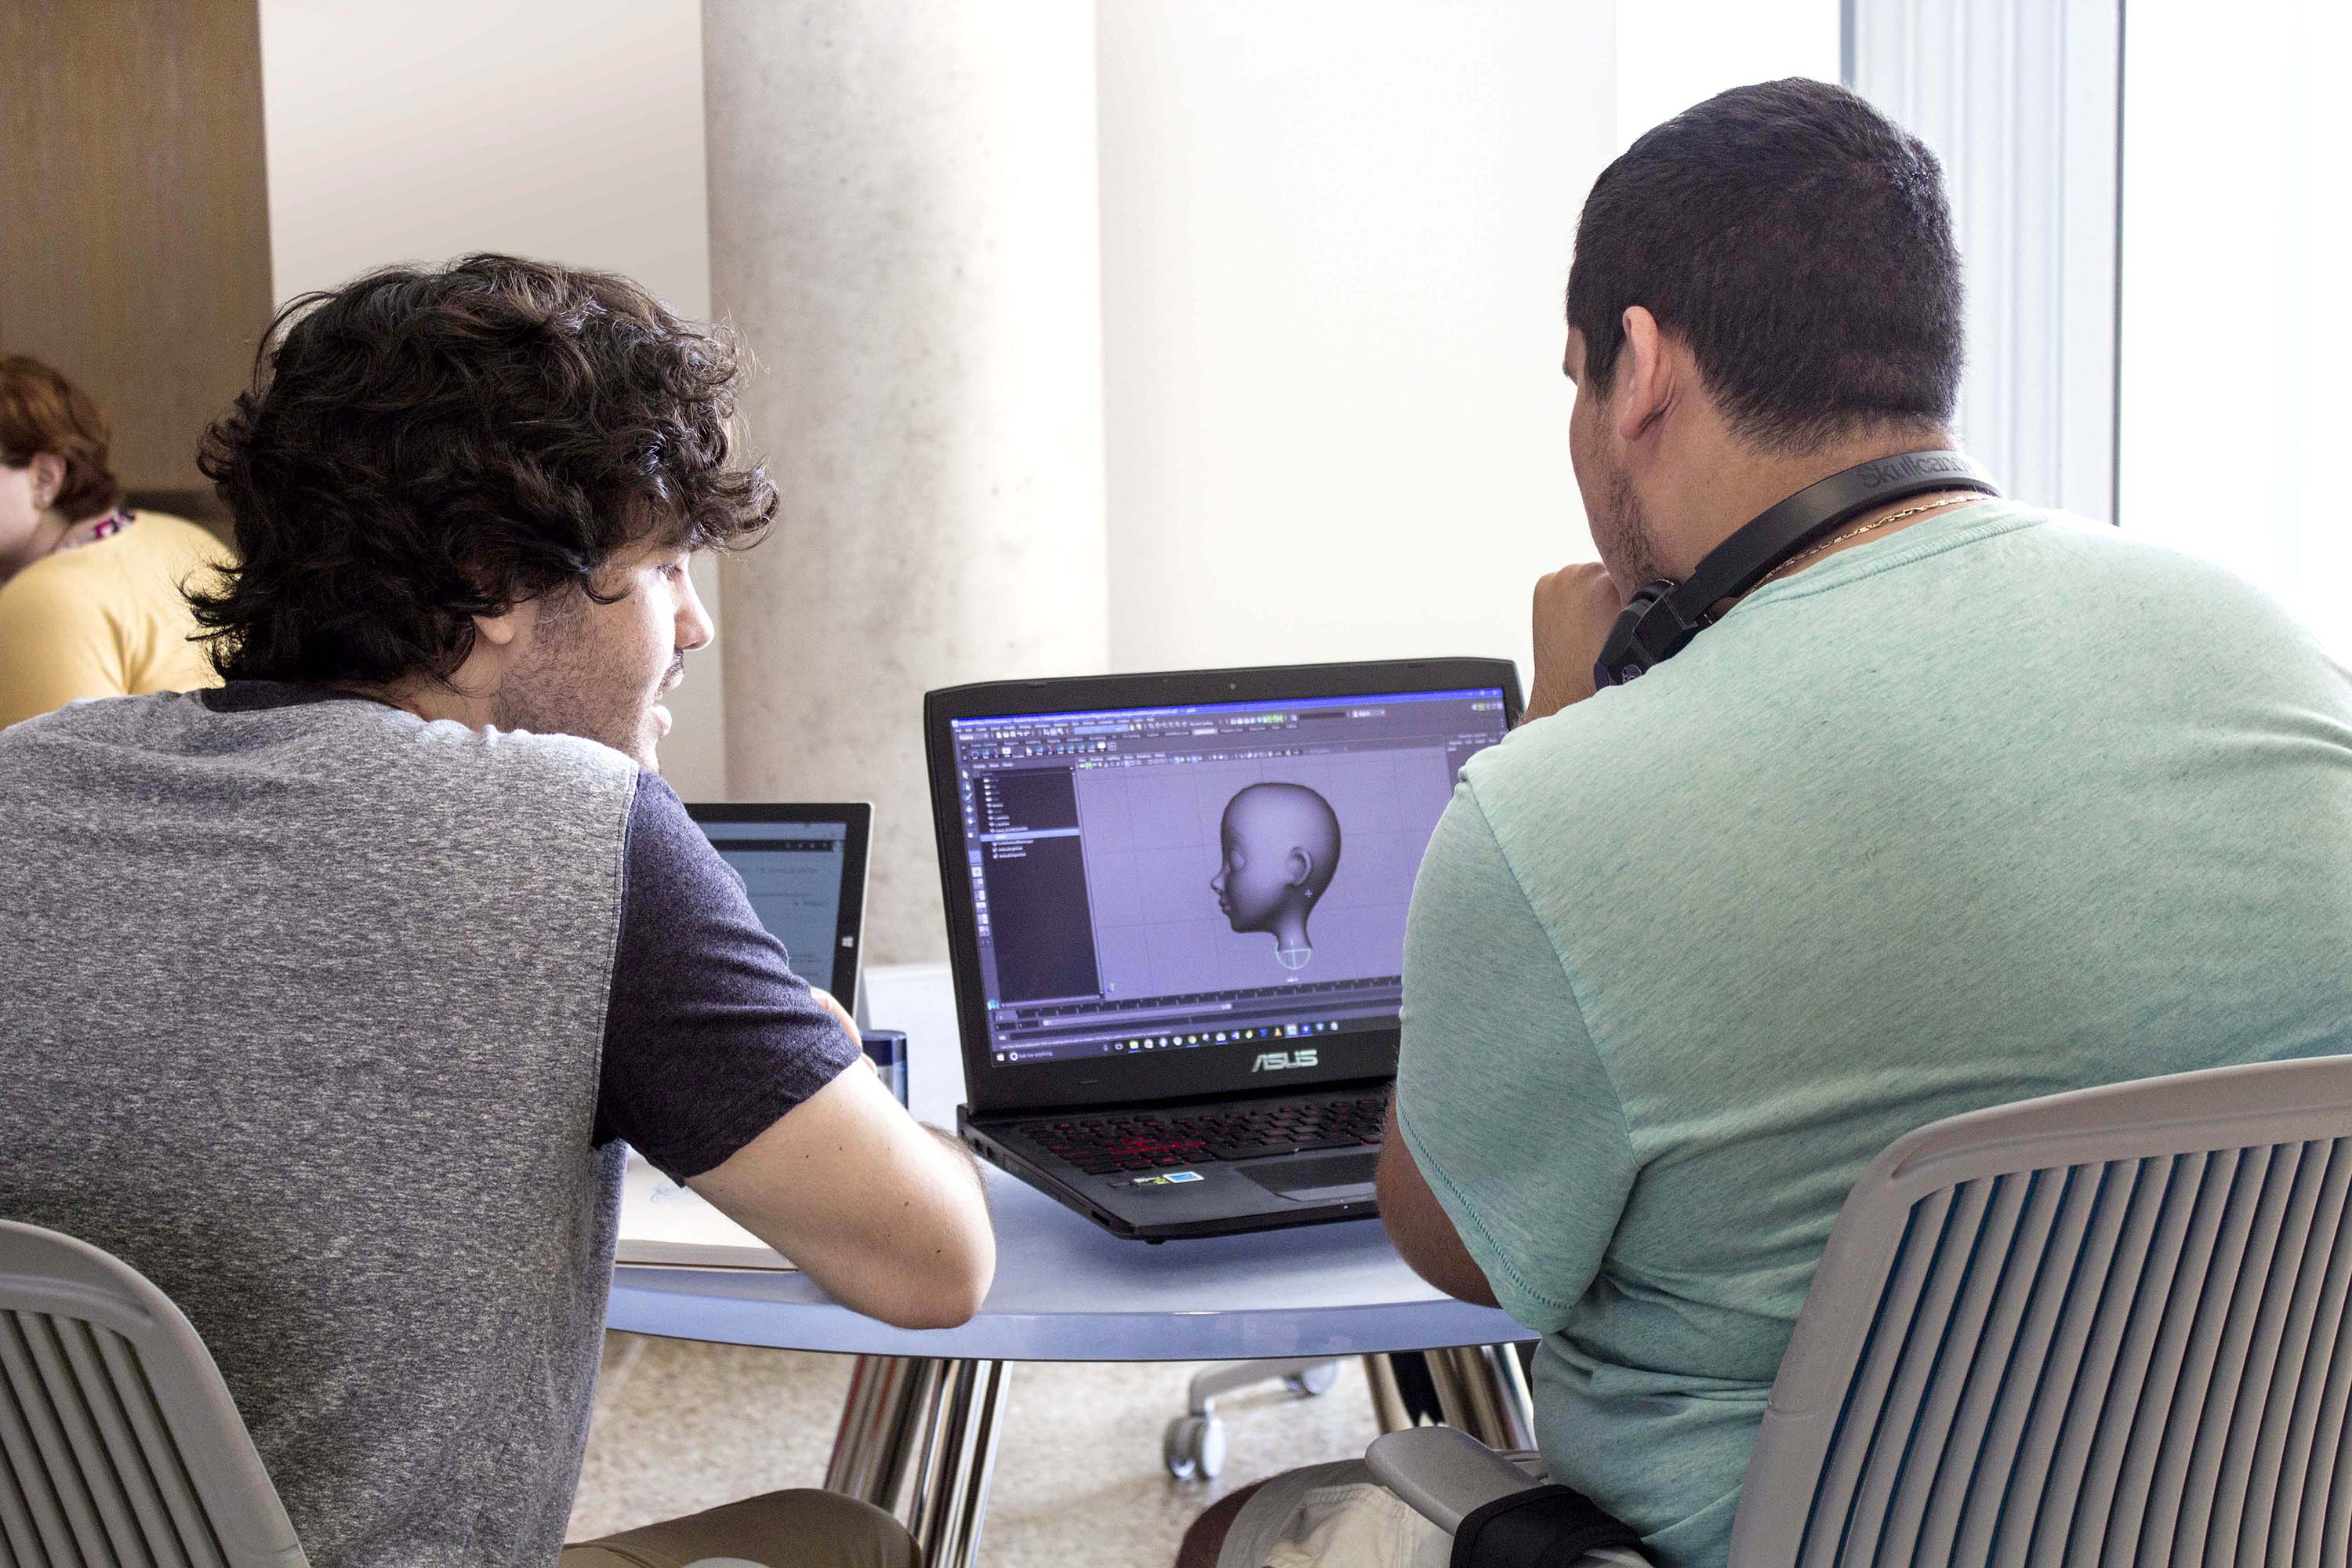 Animation students reviewing work